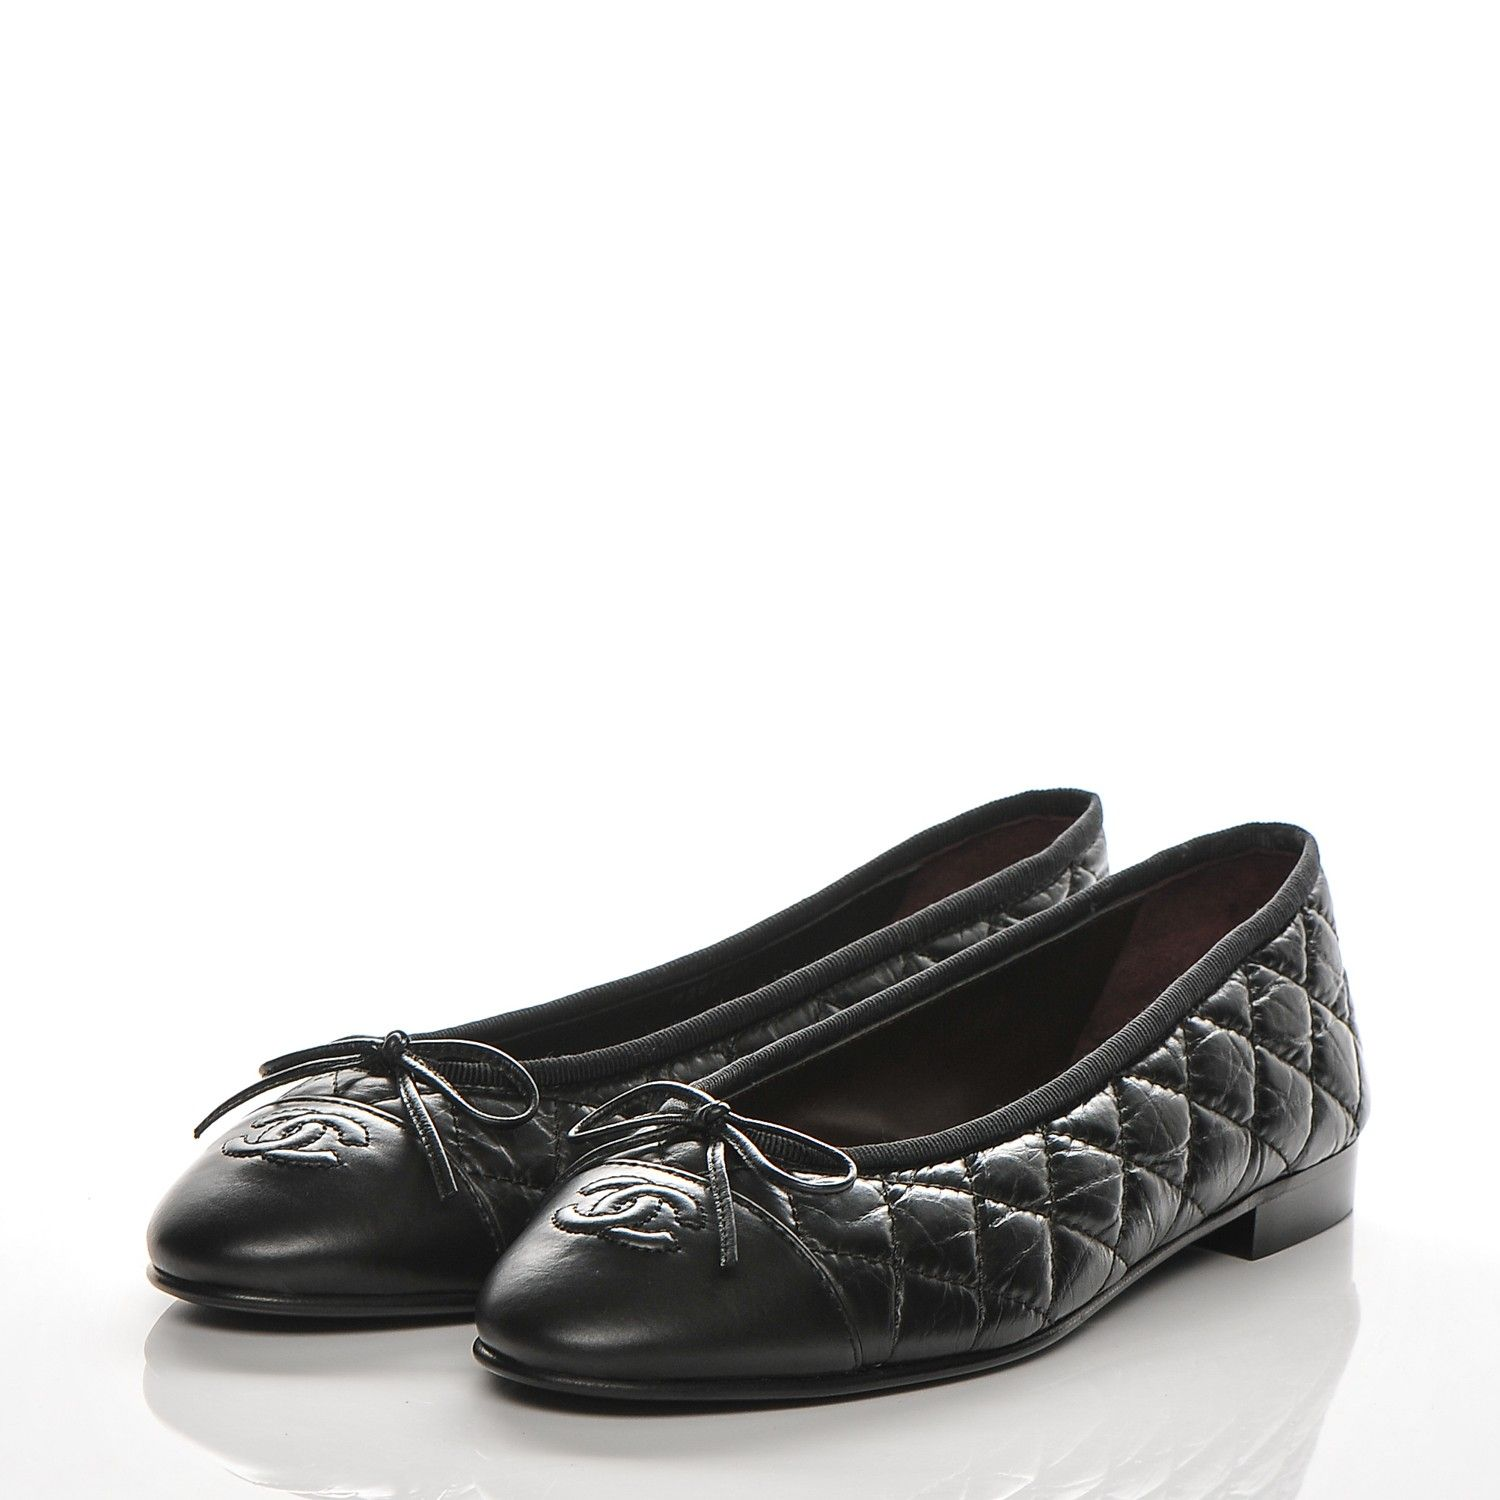 04ac5cef9f4a This is an authentic pair of CHANEL Aged Calfskin Quilted CC Cap Toe  Ballerina Flats 37.5